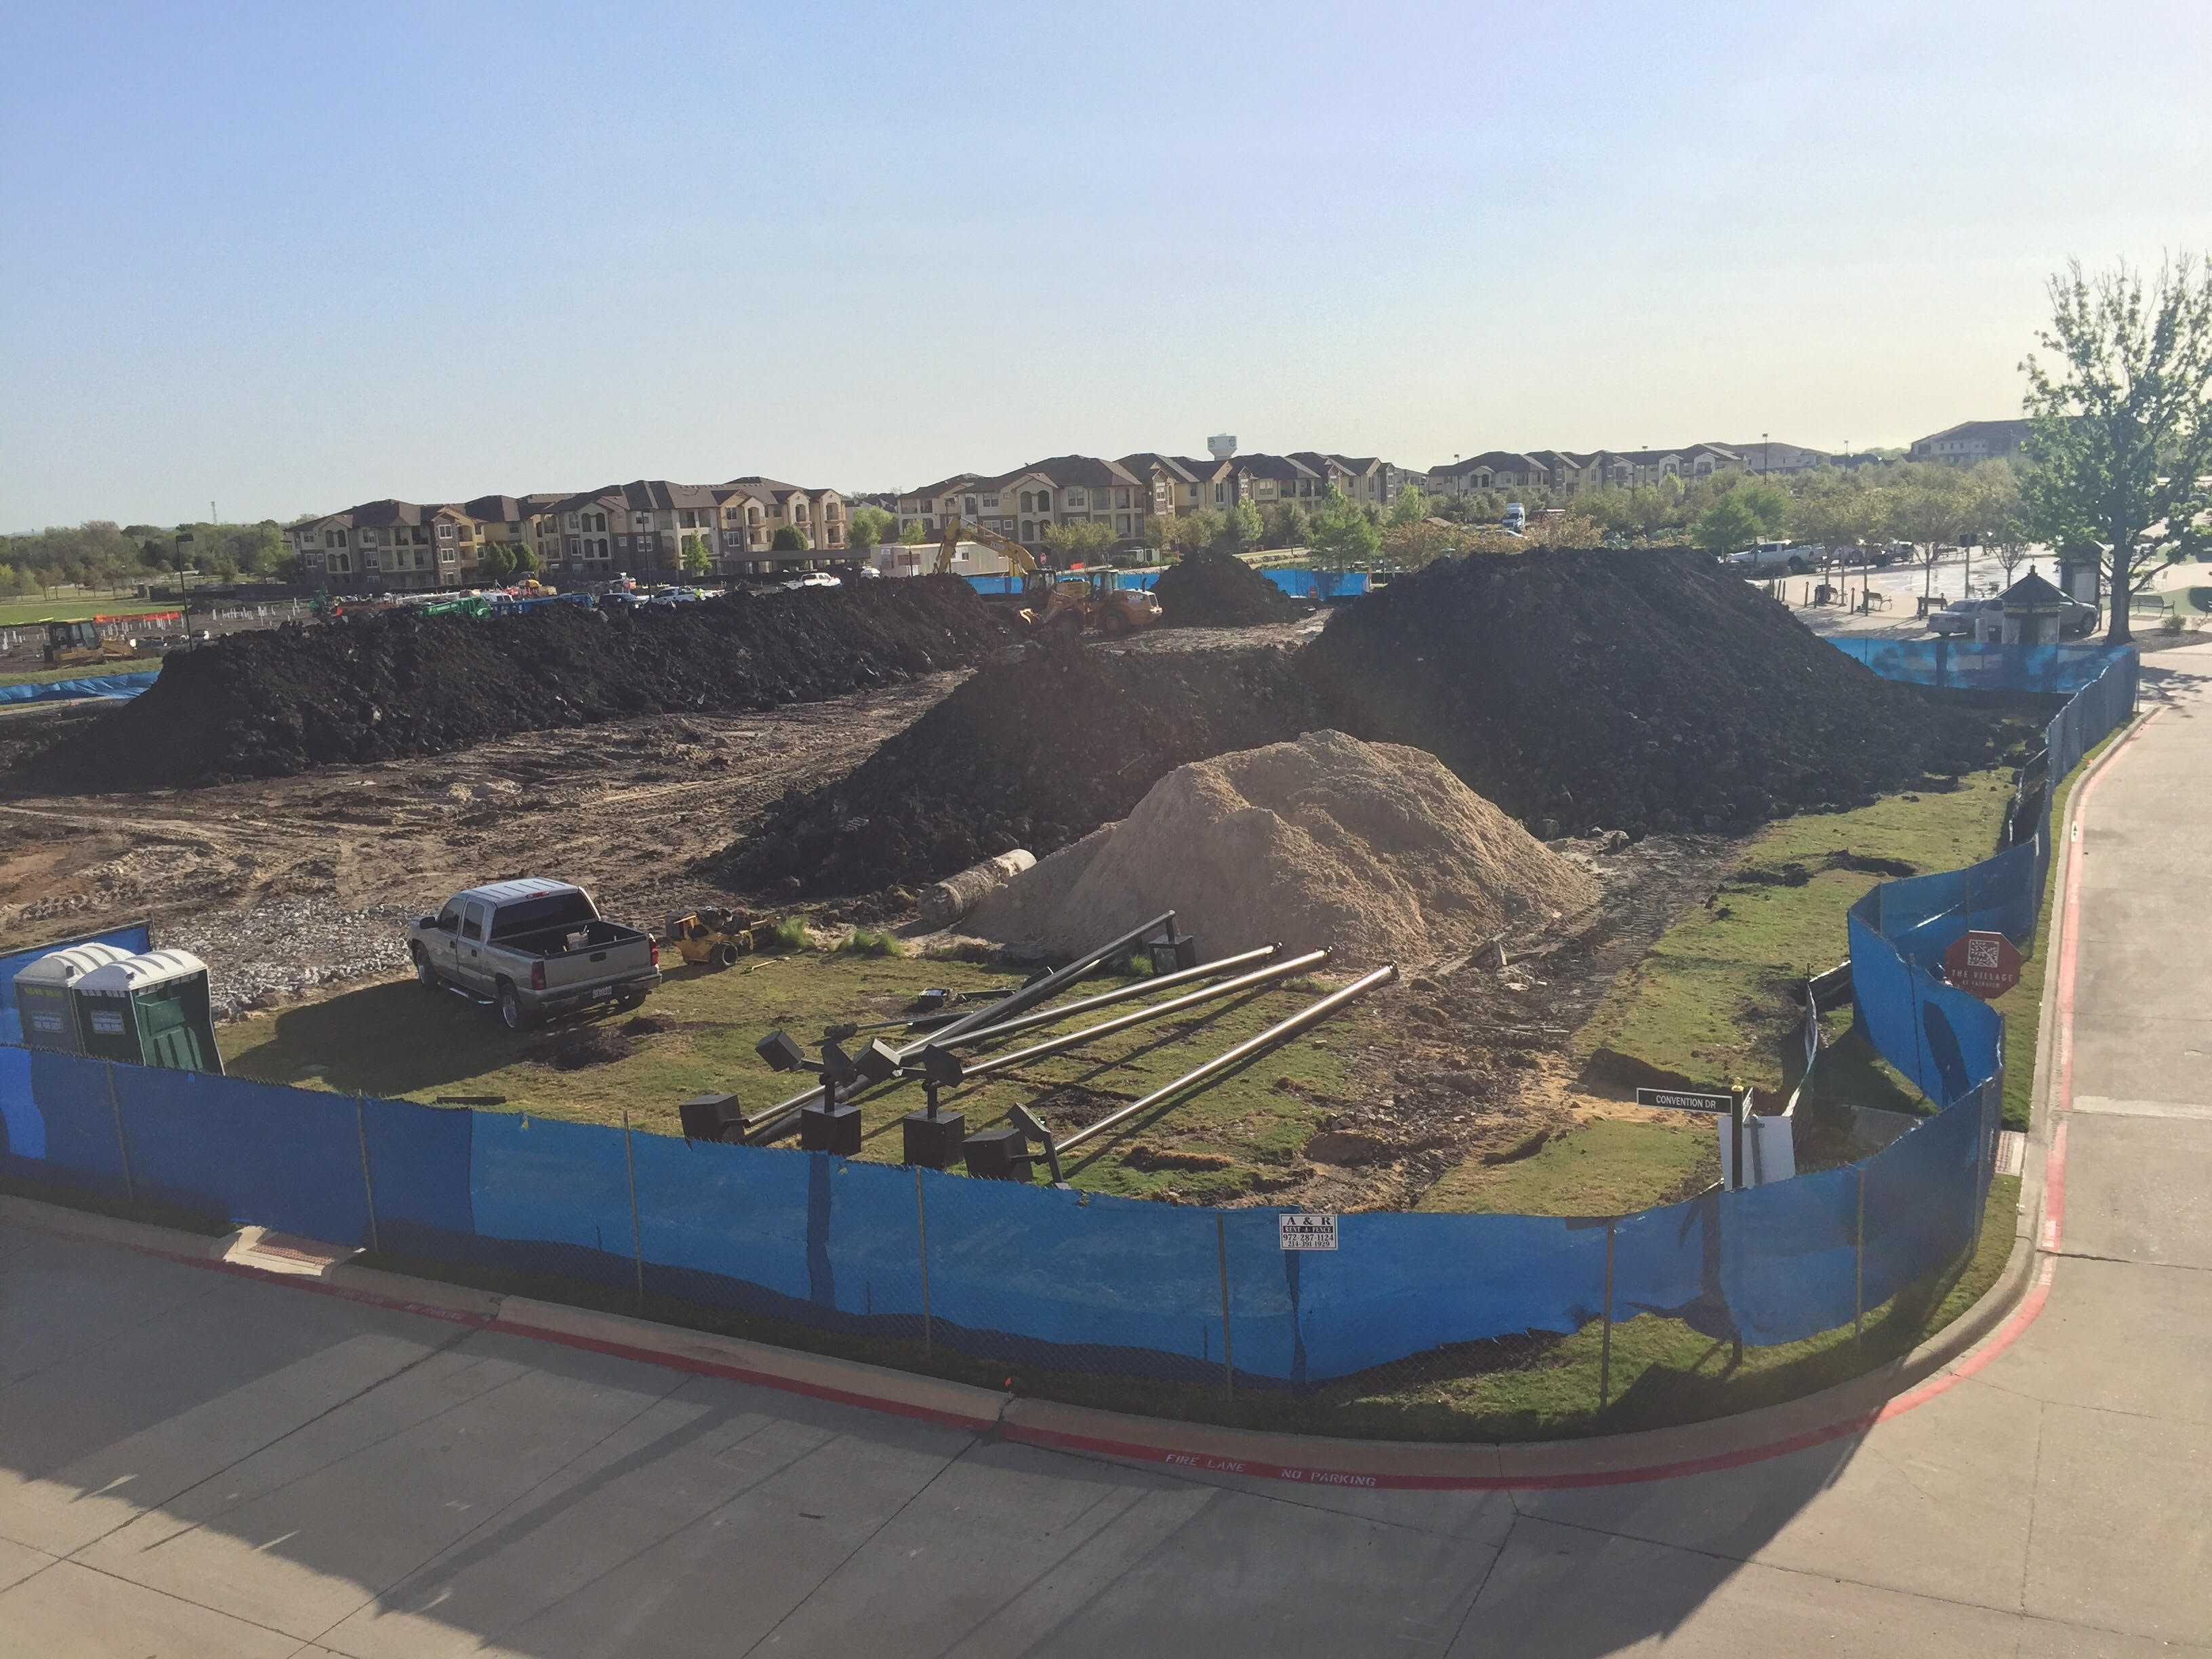 The former Village Beach has been bulldozed to begin construction for new Home2 Suites by Hilton.